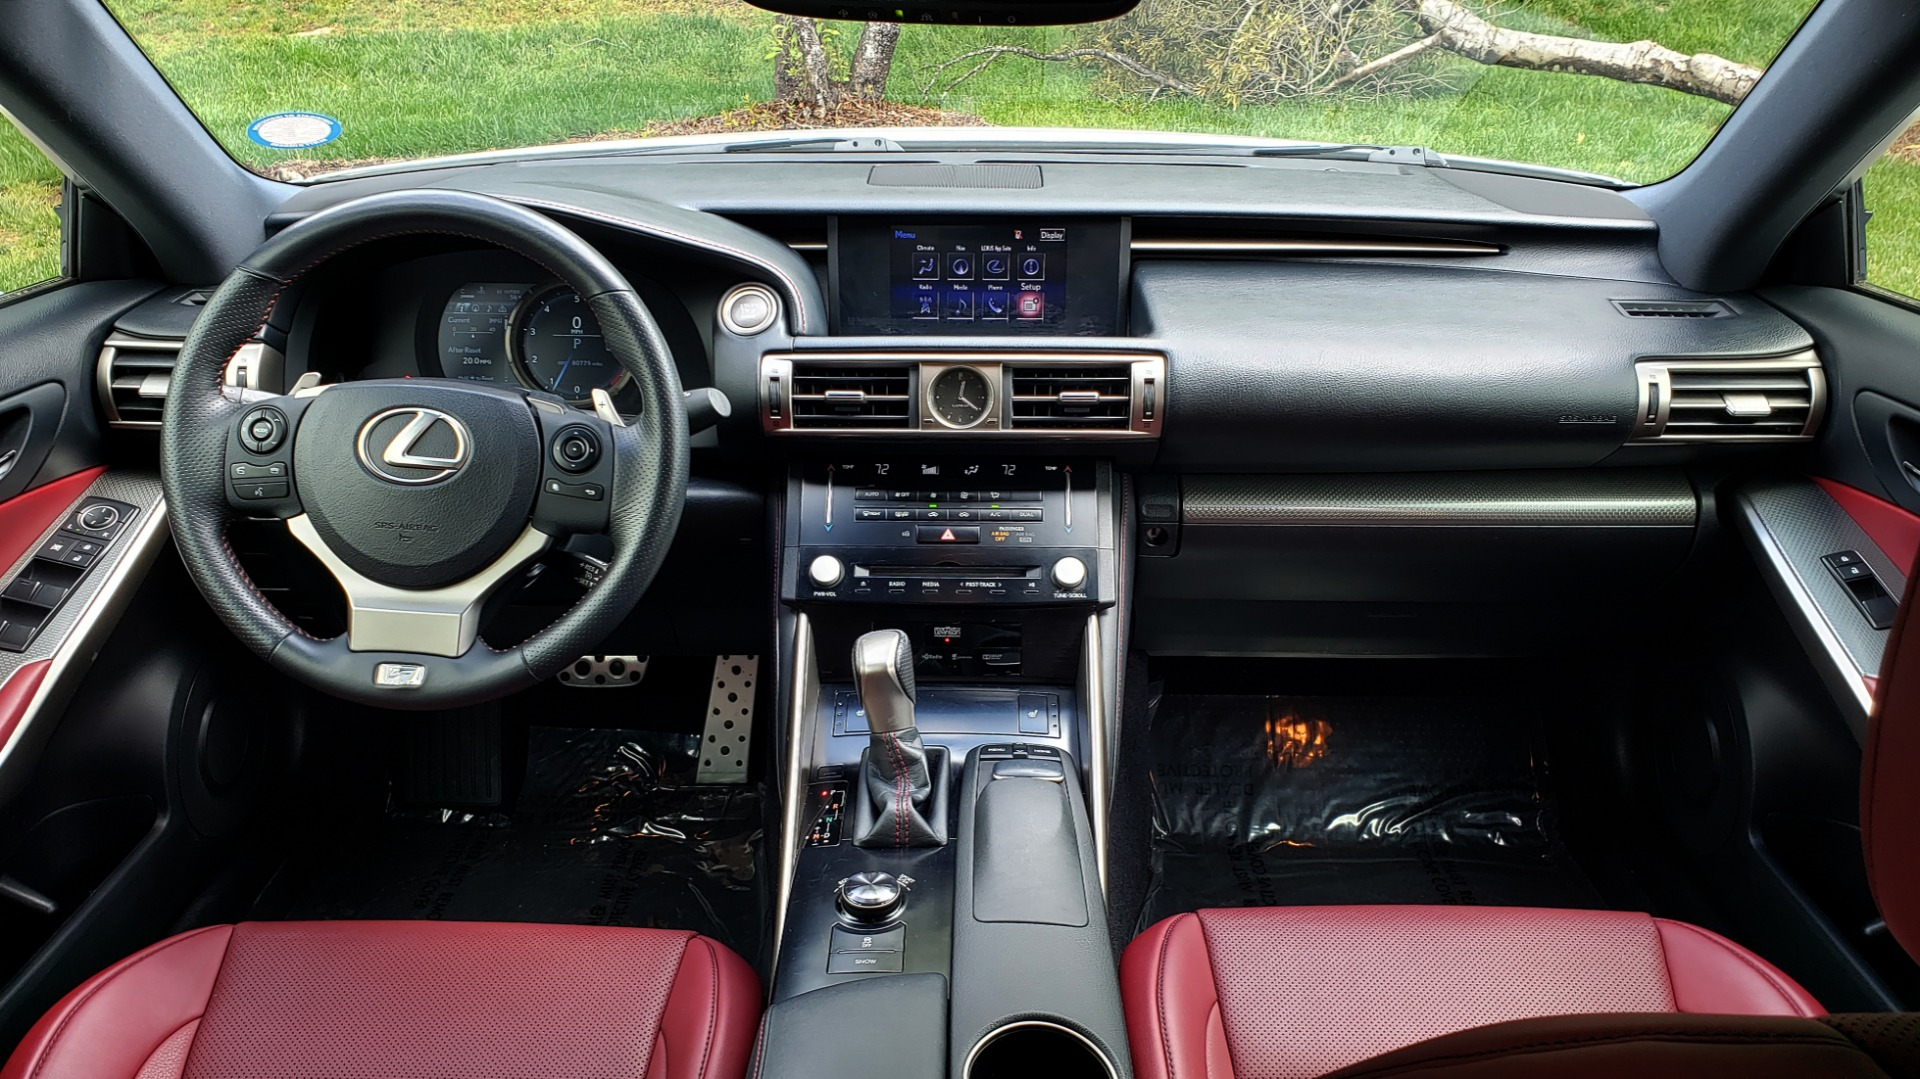 Used 2014 Lexus IS 350 F-SPORT / NAV / SUNROOF / REARVIEW / BSM / MARK LEV SND for sale Sold at Formula Imports in Charlotte NC 28227 77